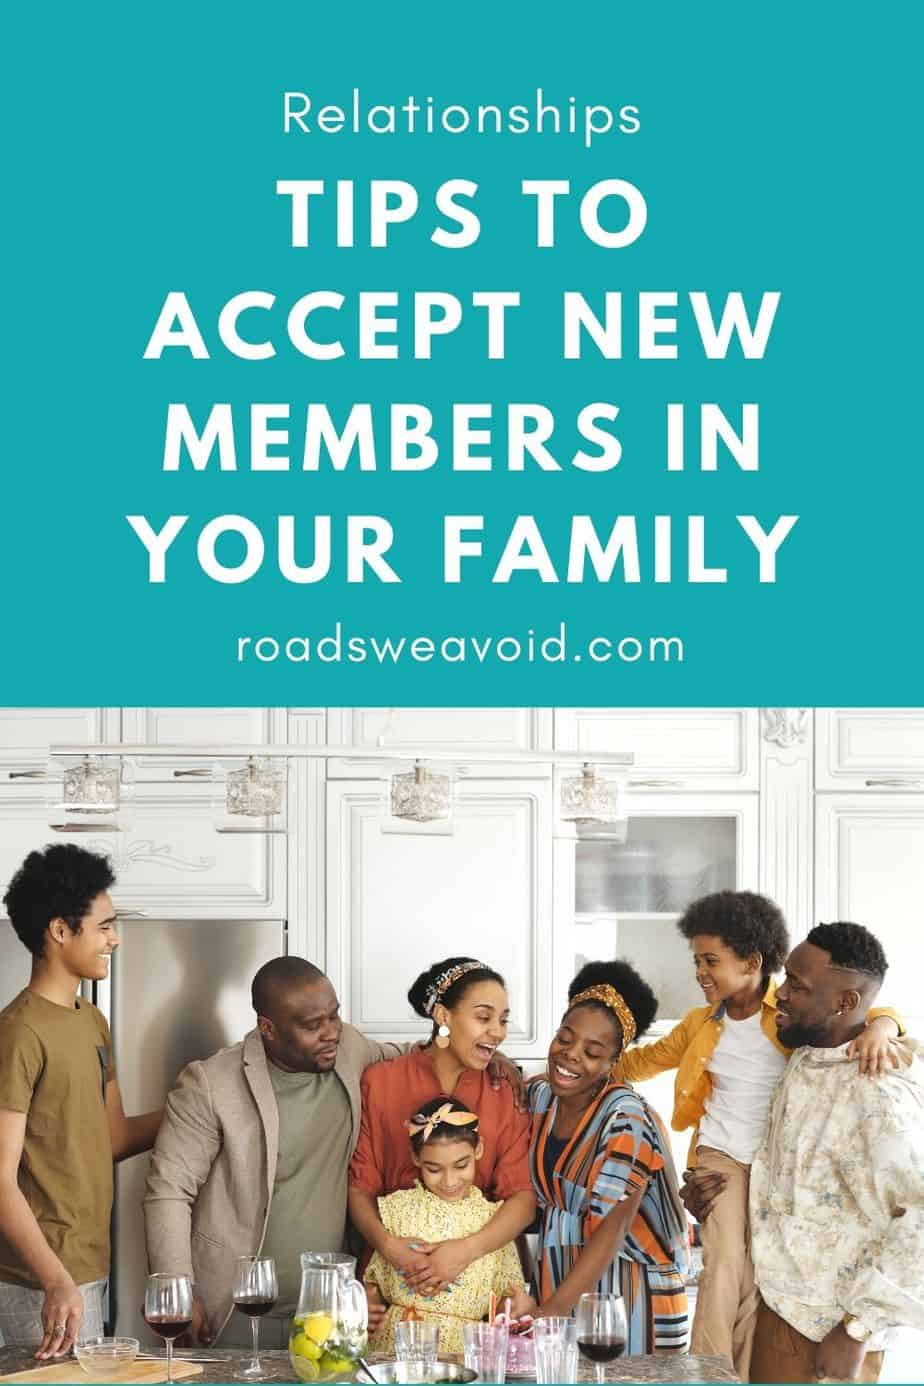 How to accept new members into your family